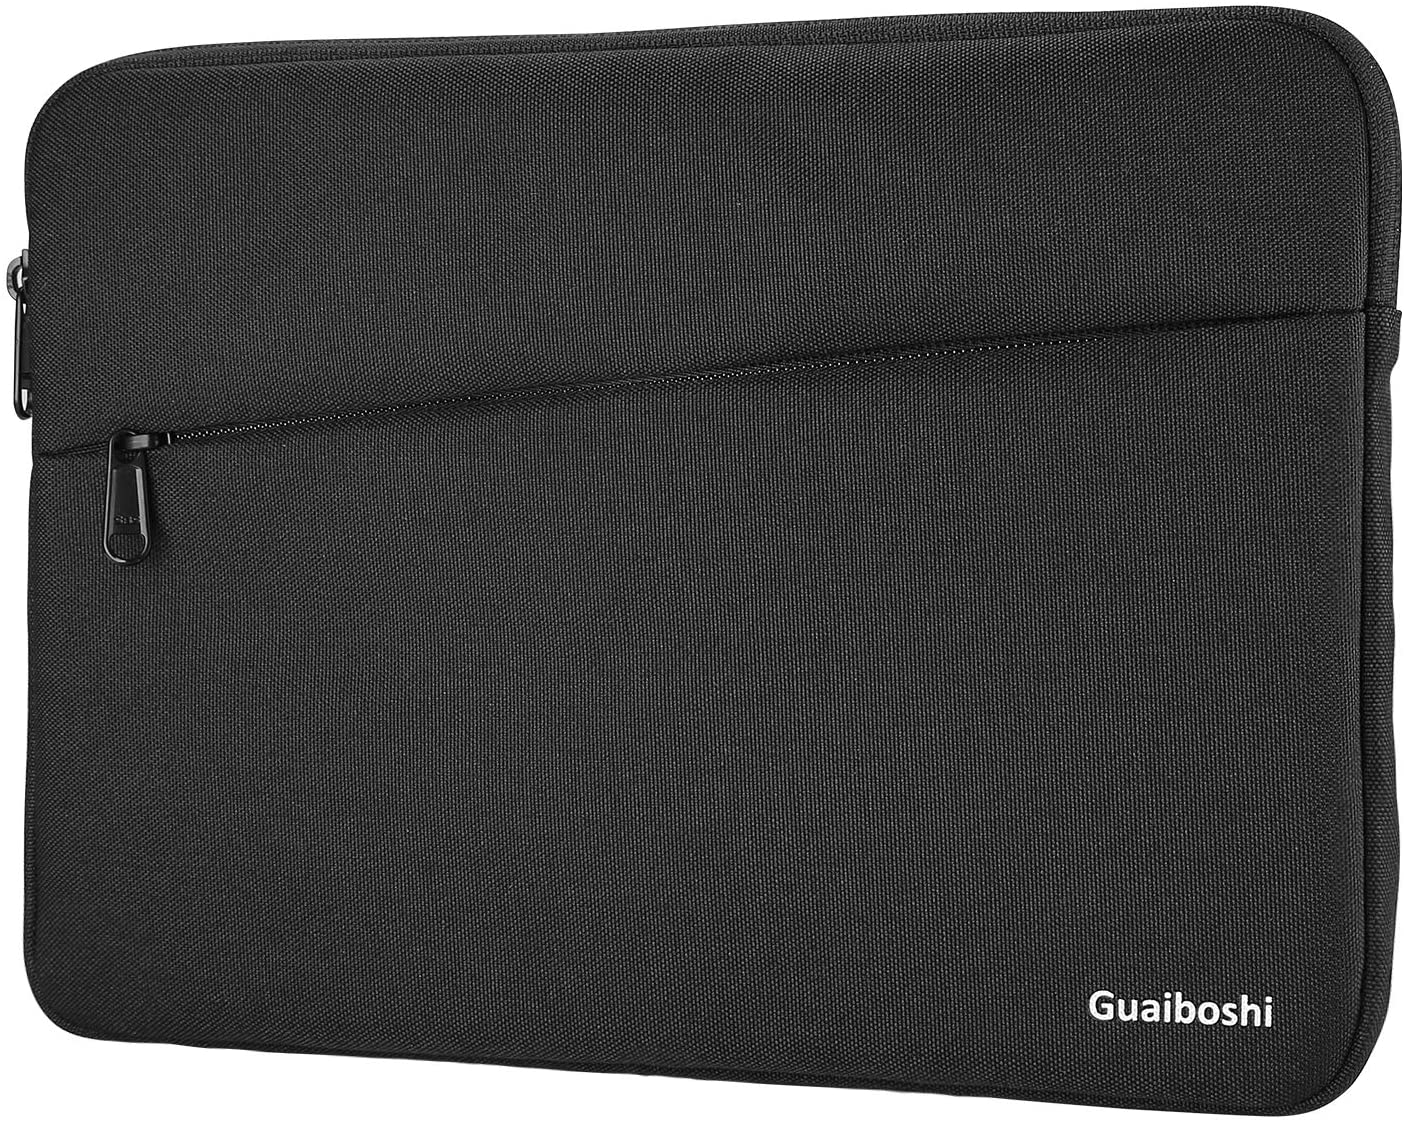 """10.5-11 inch Tablet Sleeve, Polyester Pouch Cover Case Fits 11"""" New iPad Pro 2018, 10.5"""" iPad Air 2019/ iPad Pro, Microsoft Surface Go, Samsung Tab, Fit for Apple Pencil & Smart Keyboard – Black"""